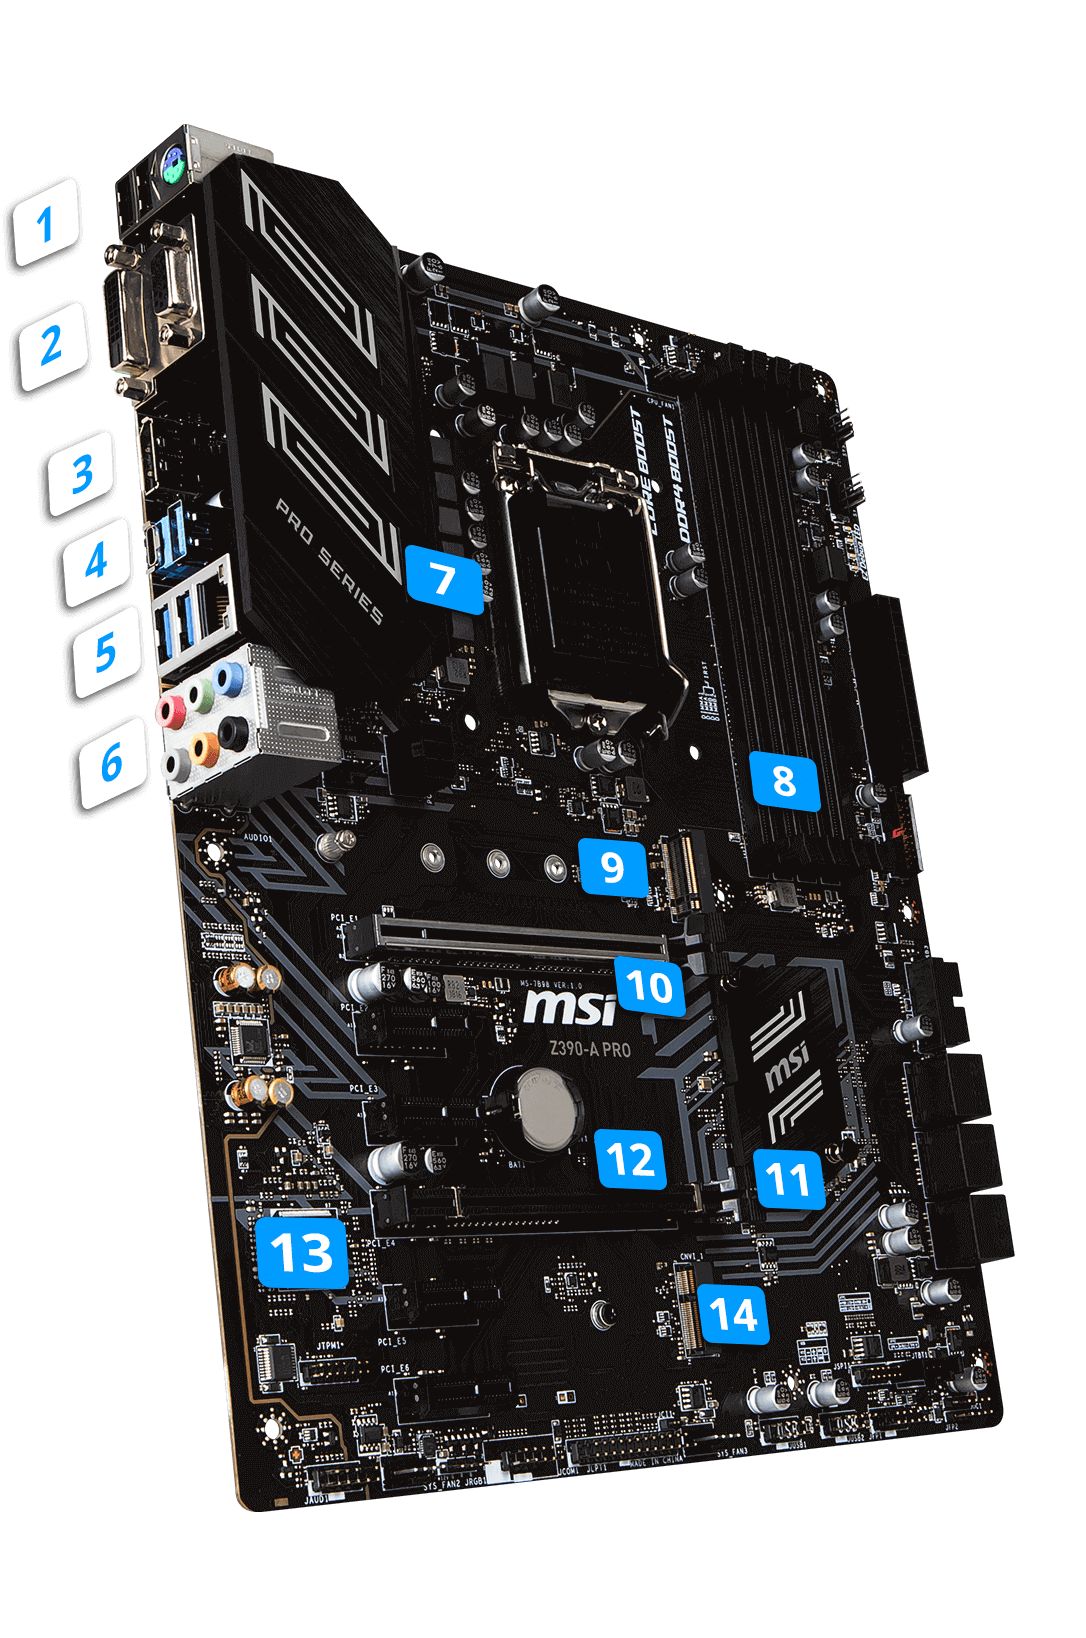 MSI Z390-A PRO overview